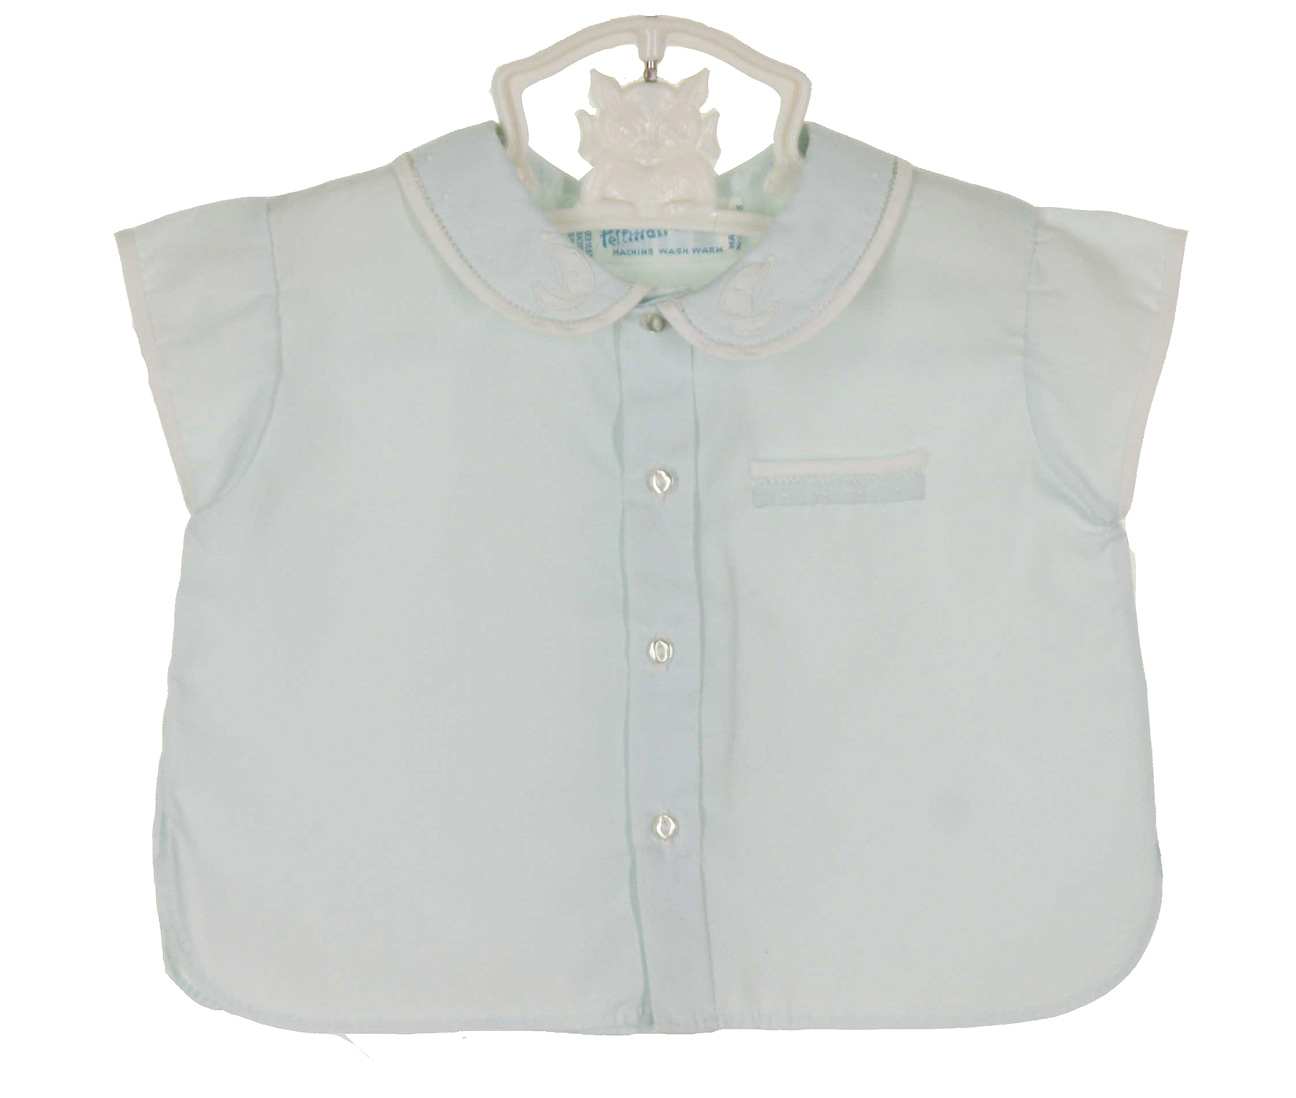 7bd53734e641 Feltman Brothers vintage blue diaper shirt with embroidered ...